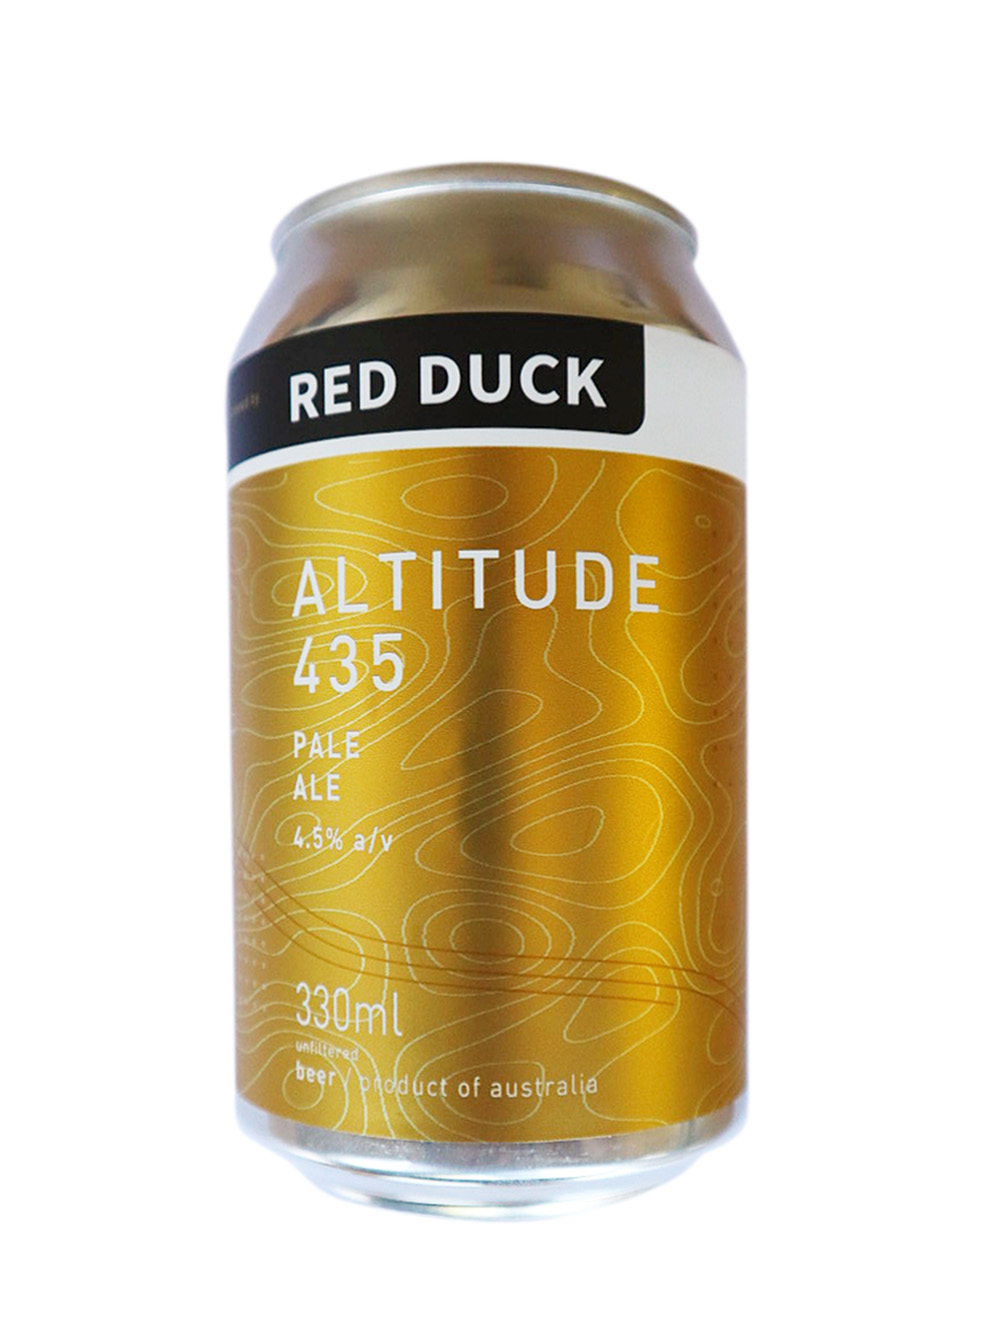 https://www.redduckbeer.com.au/wp-content/uploads/2014/11/Altitude-435-can-WEB.jpg